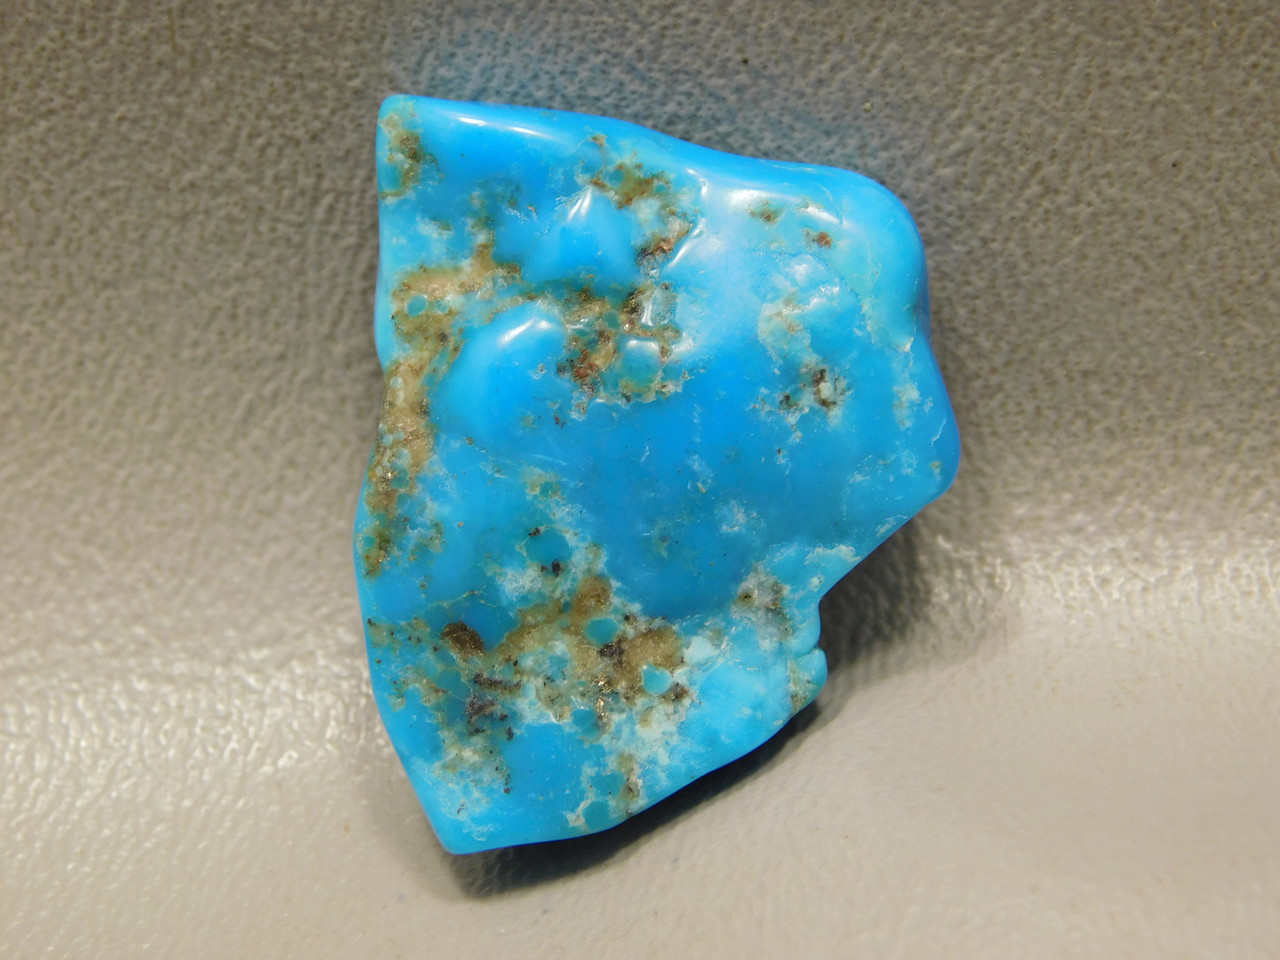 Turquoise Polished Nugget Cabochon Jewelry Making Supplies #N24